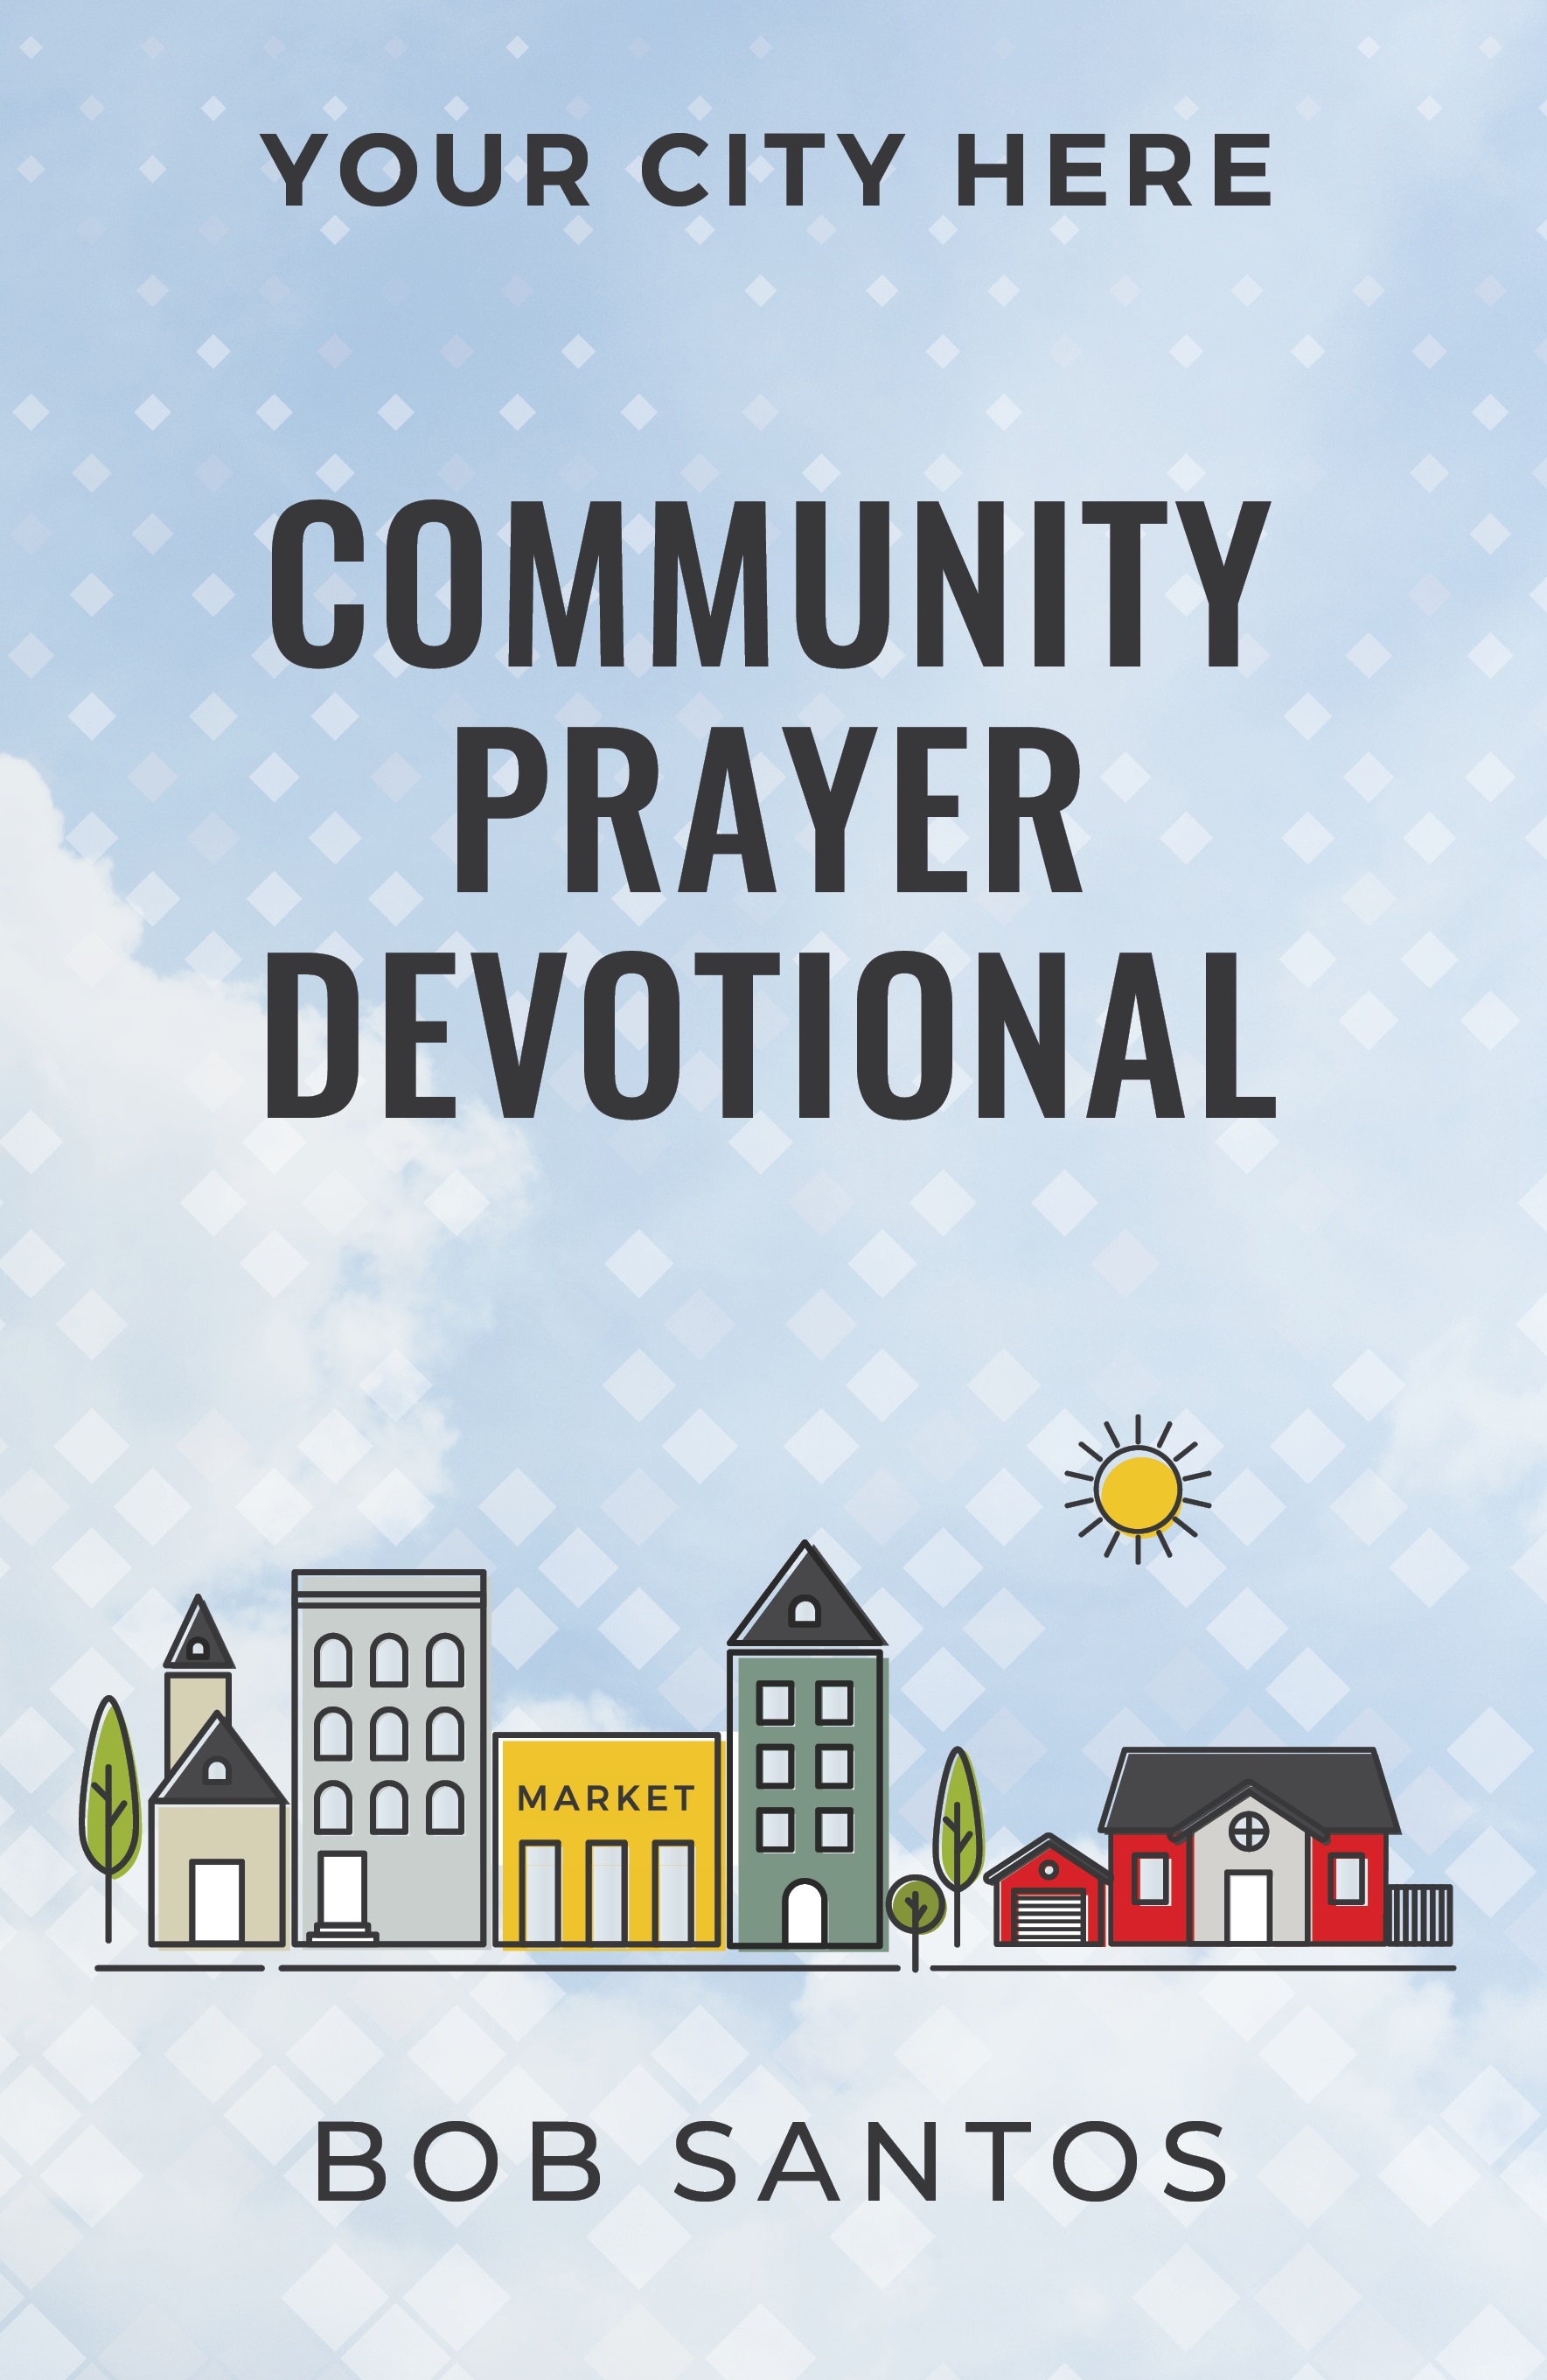 COMMUNITY PRAYER DEVOTIONAL - Search for Me Ministries